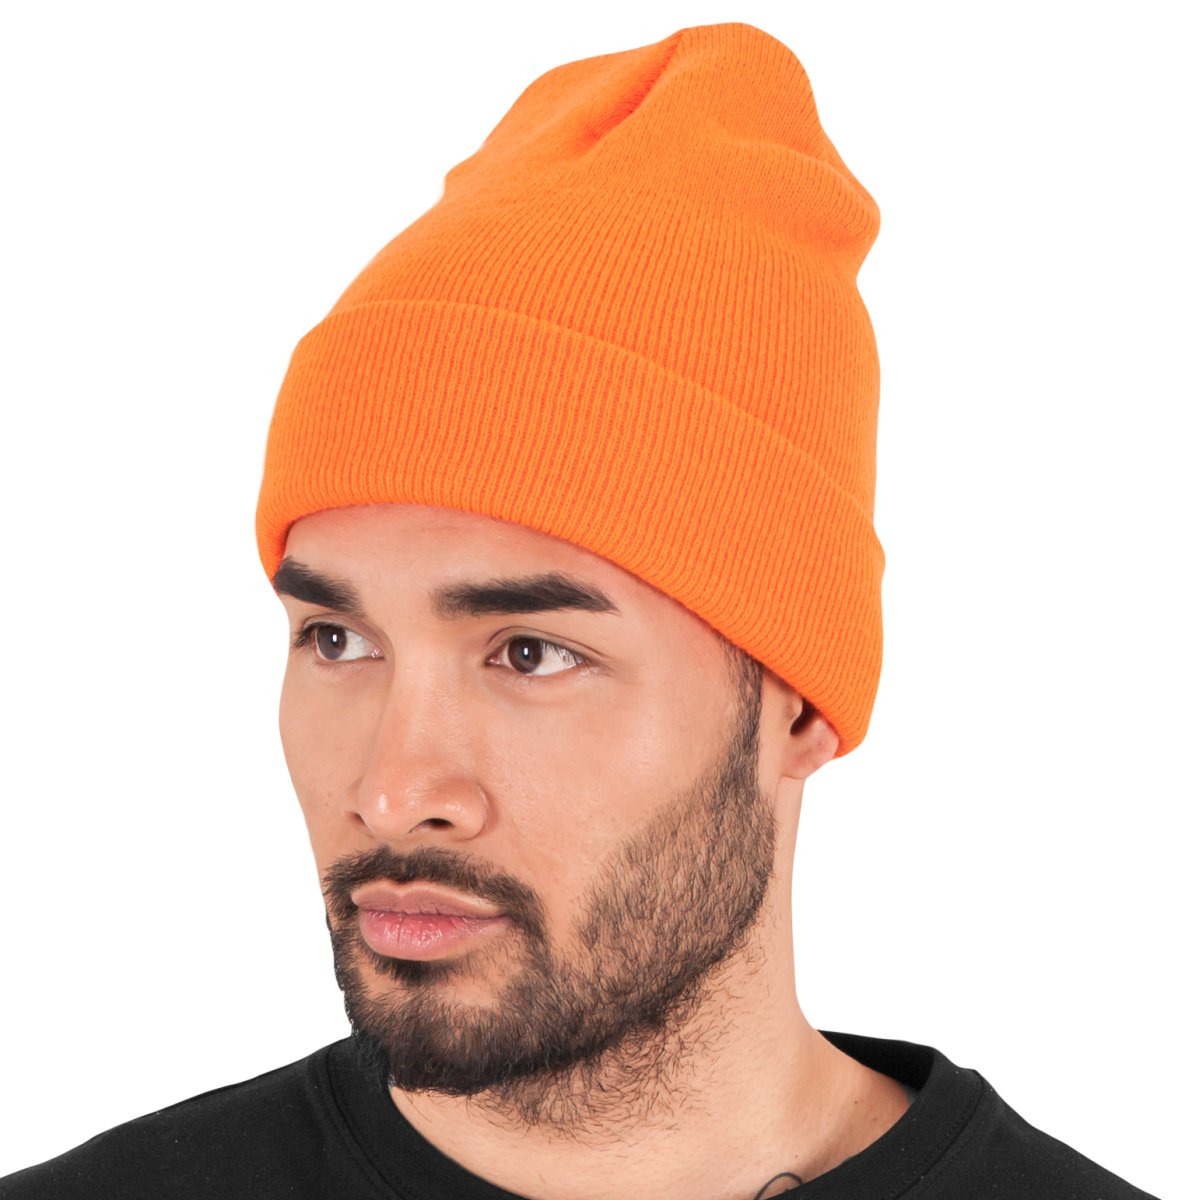 ec1f0aad86a Heavyweight Long Beanie Urban Classics Flexfit Hat Yupoong Blaze Orange.  About this product. Picture 1 of 4  Picture 2 of 4  Picture 3 of 4 ...